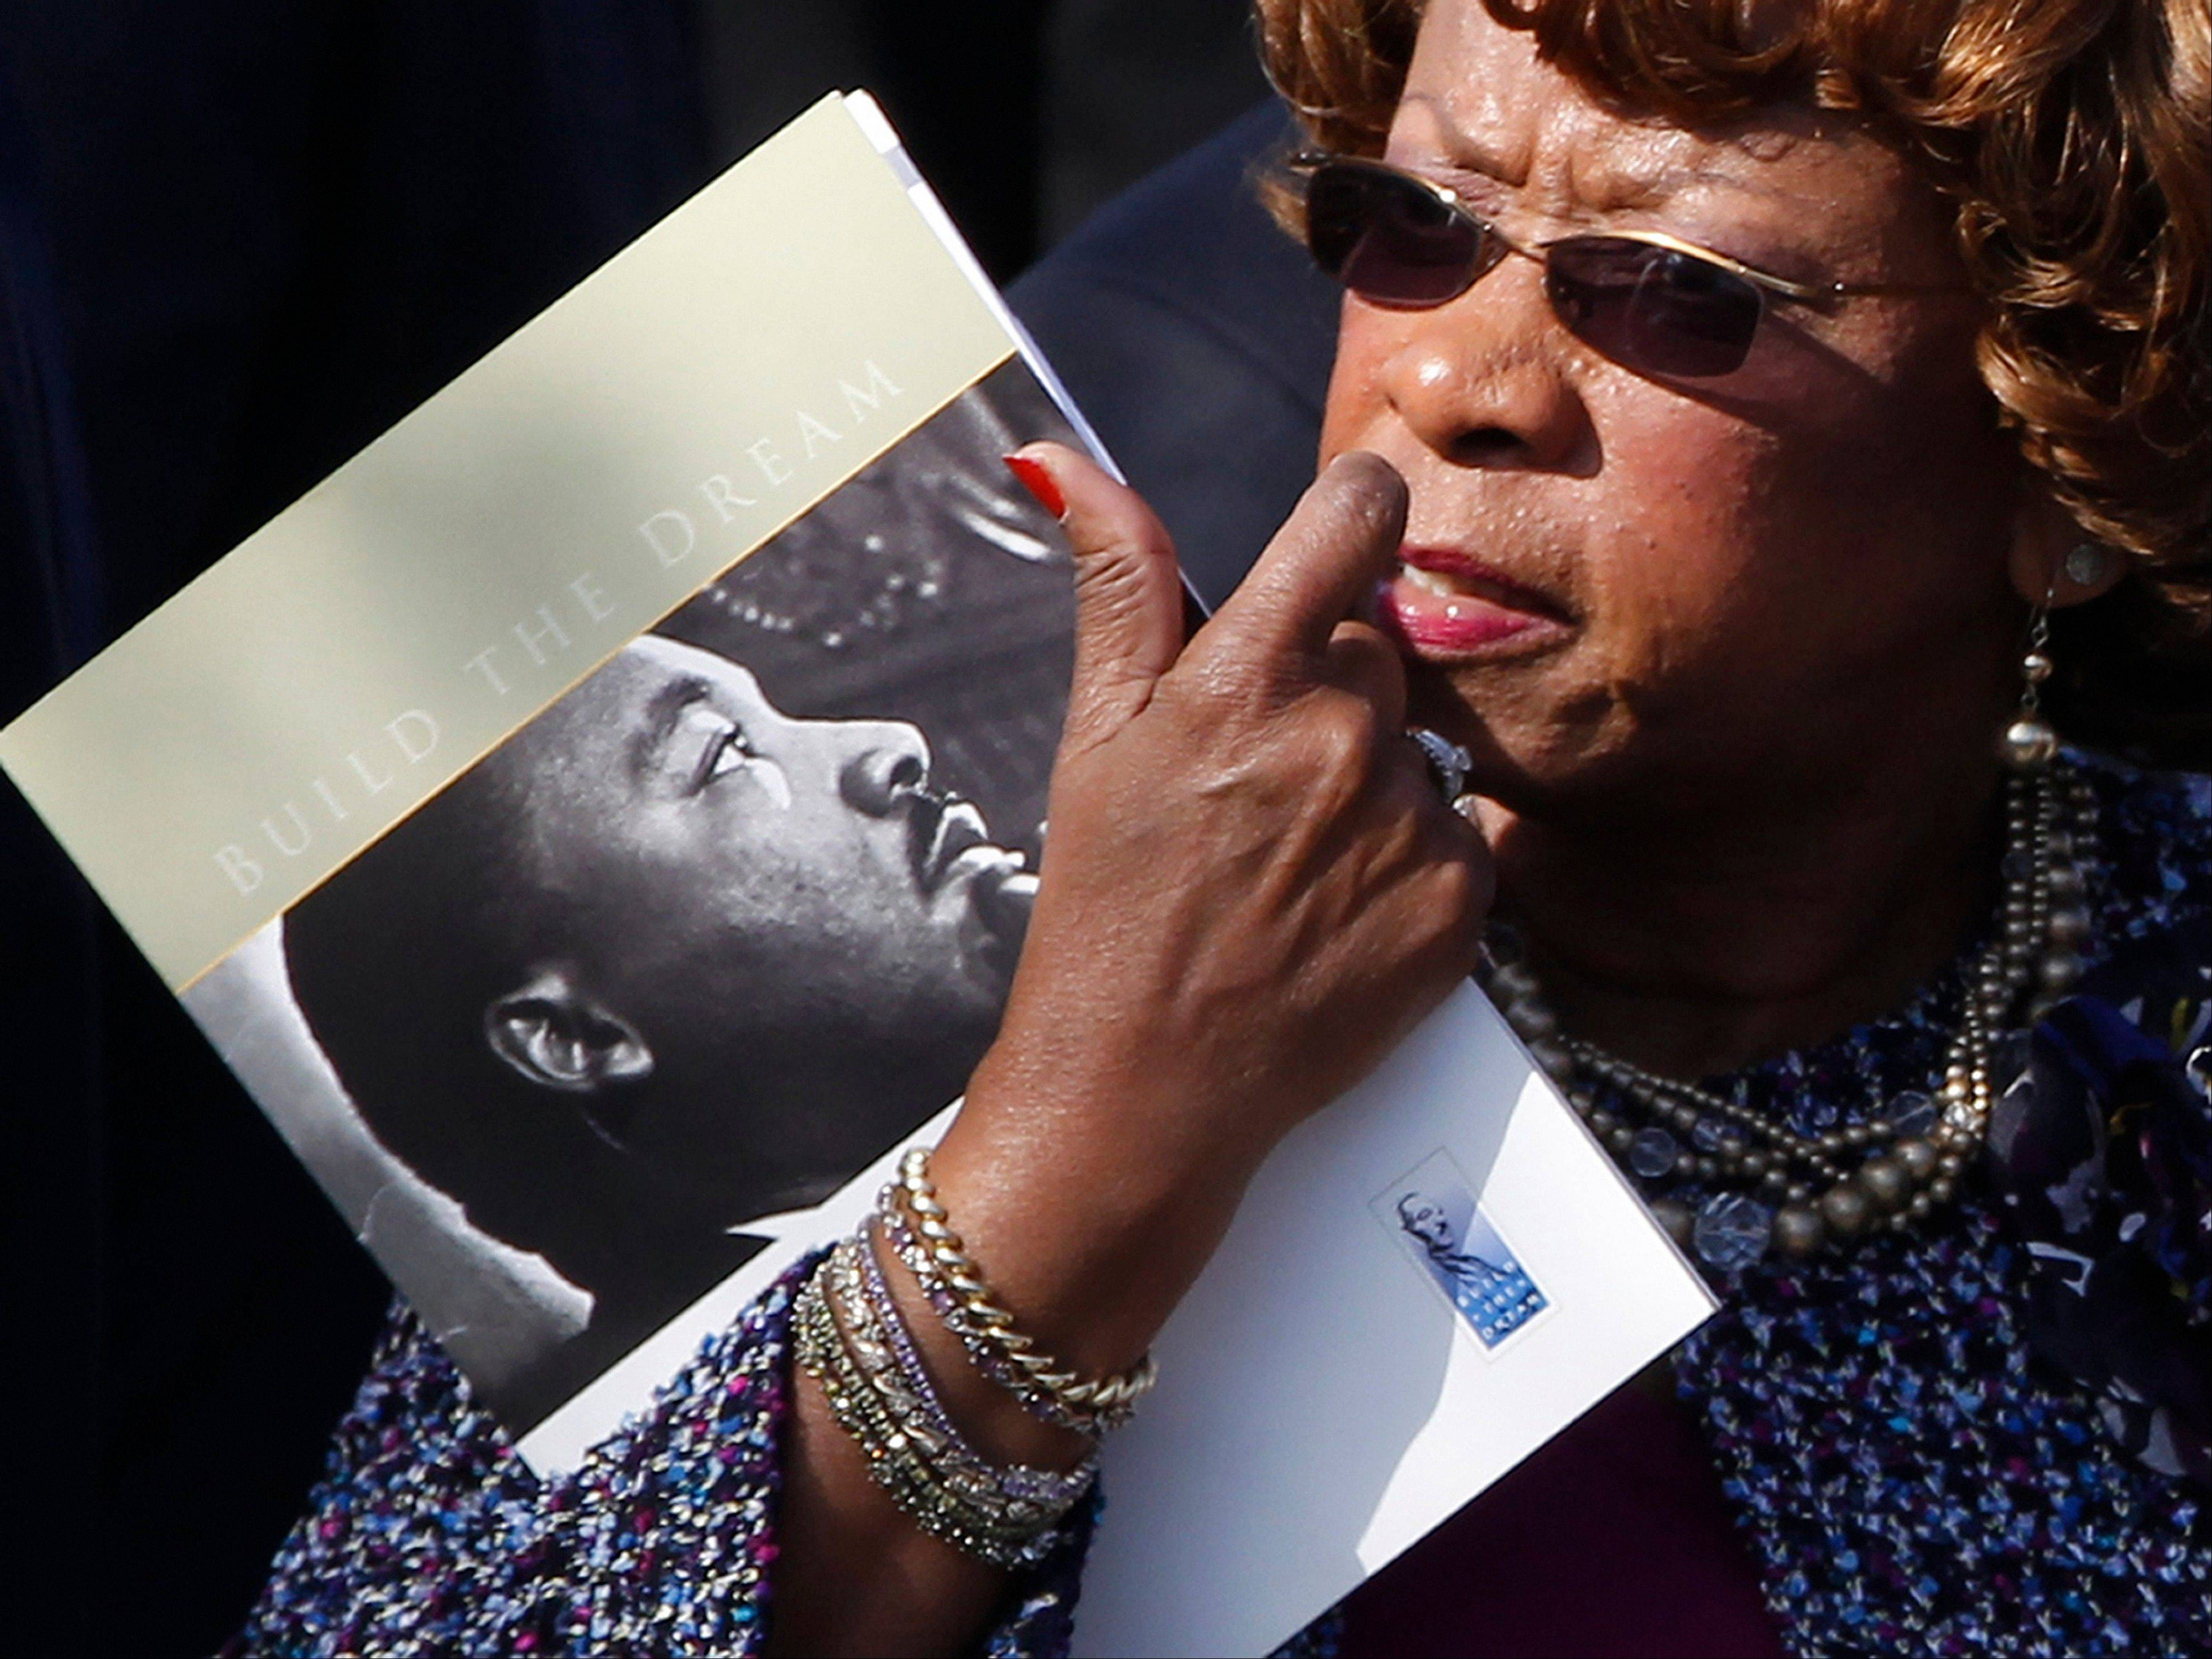 An unidentified guest arrives holding a document bearing the image of Martin Luther King Jr., ahead of President Barack Obama's speech during the dedication of the Martin Luther King Jr. Memorial in Washington, Sunday, Oct. 16, 2011.